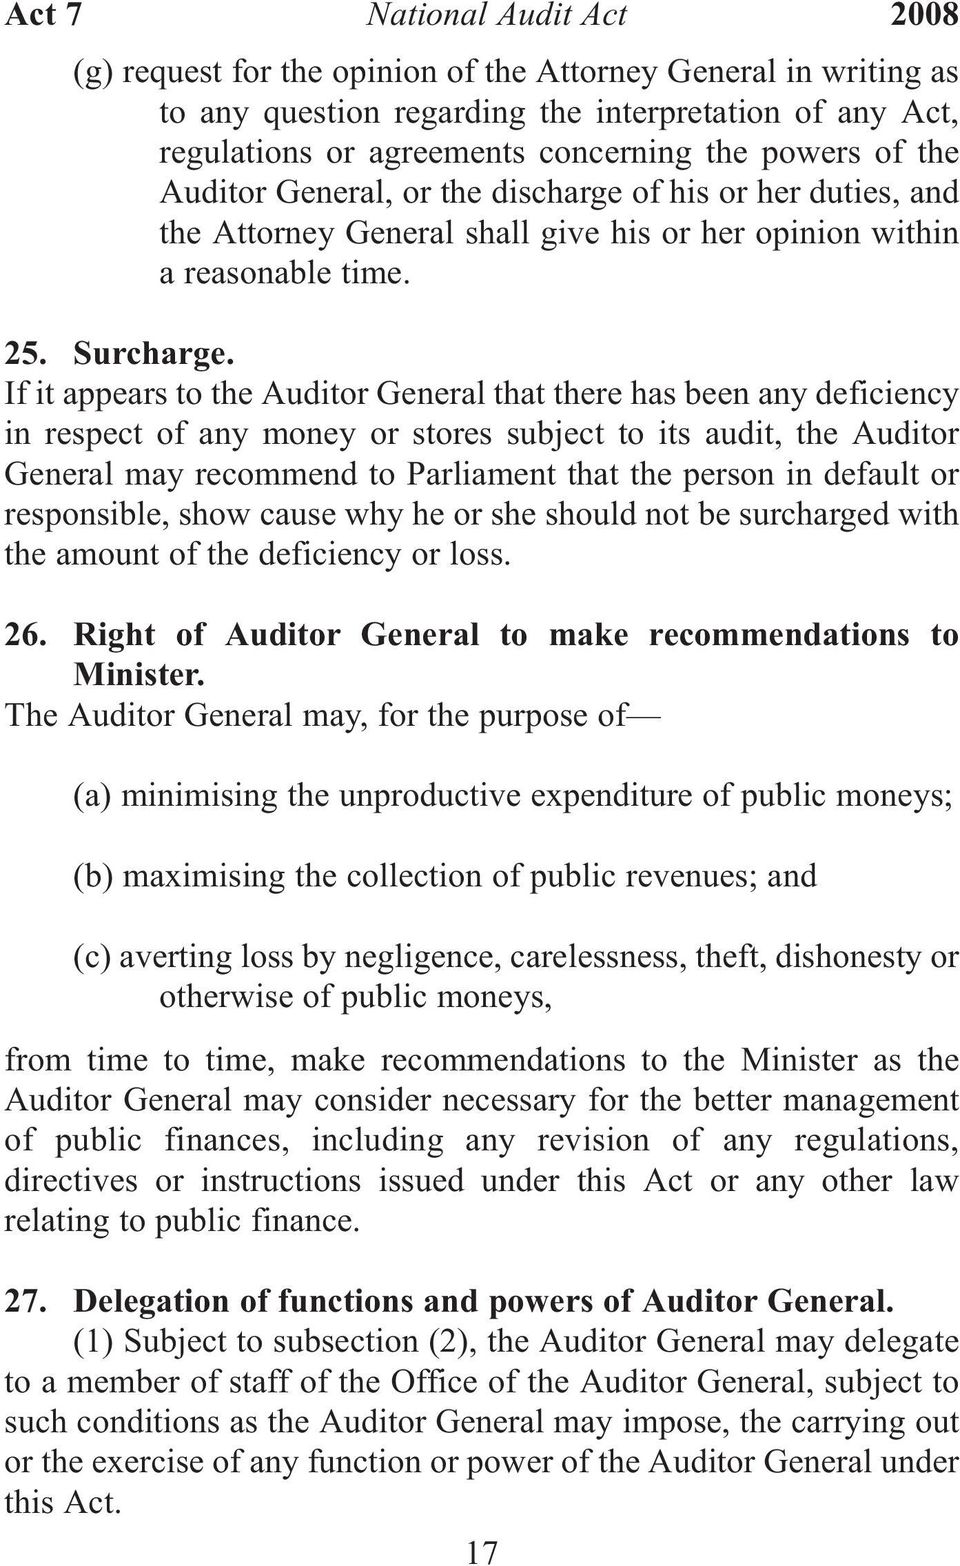 If it appears to the Auditor General that there has been any deficiency in respect of any money or stores subject to its audit, the Auditor General may recommend to Parliament that the person in